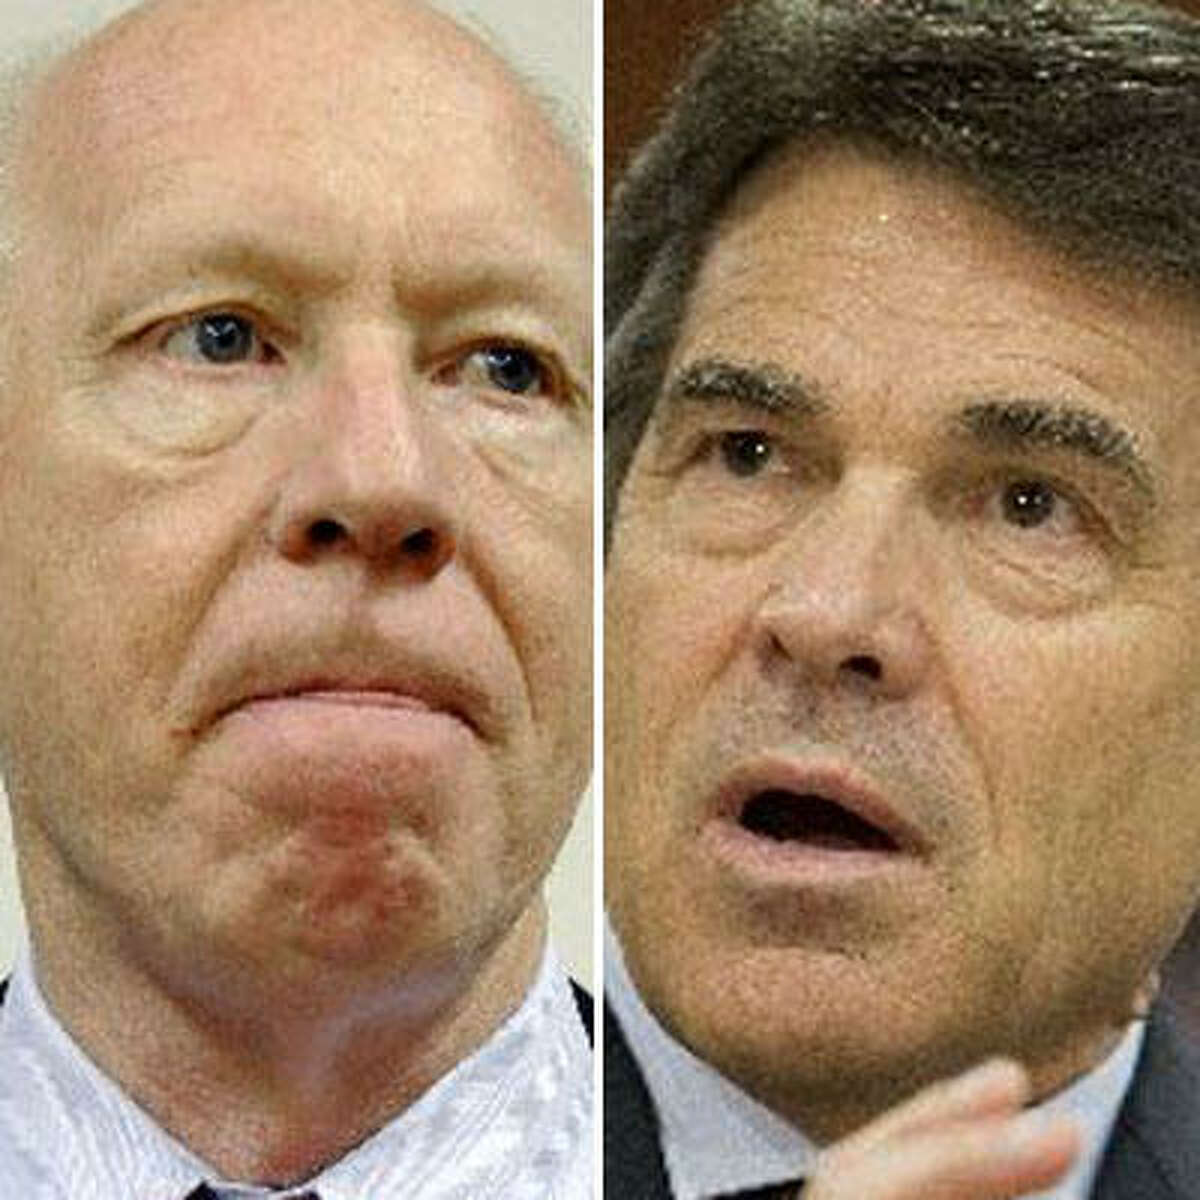 Gubernatorial candidates Democrat Bill White, left, and Republican Rick Perry.